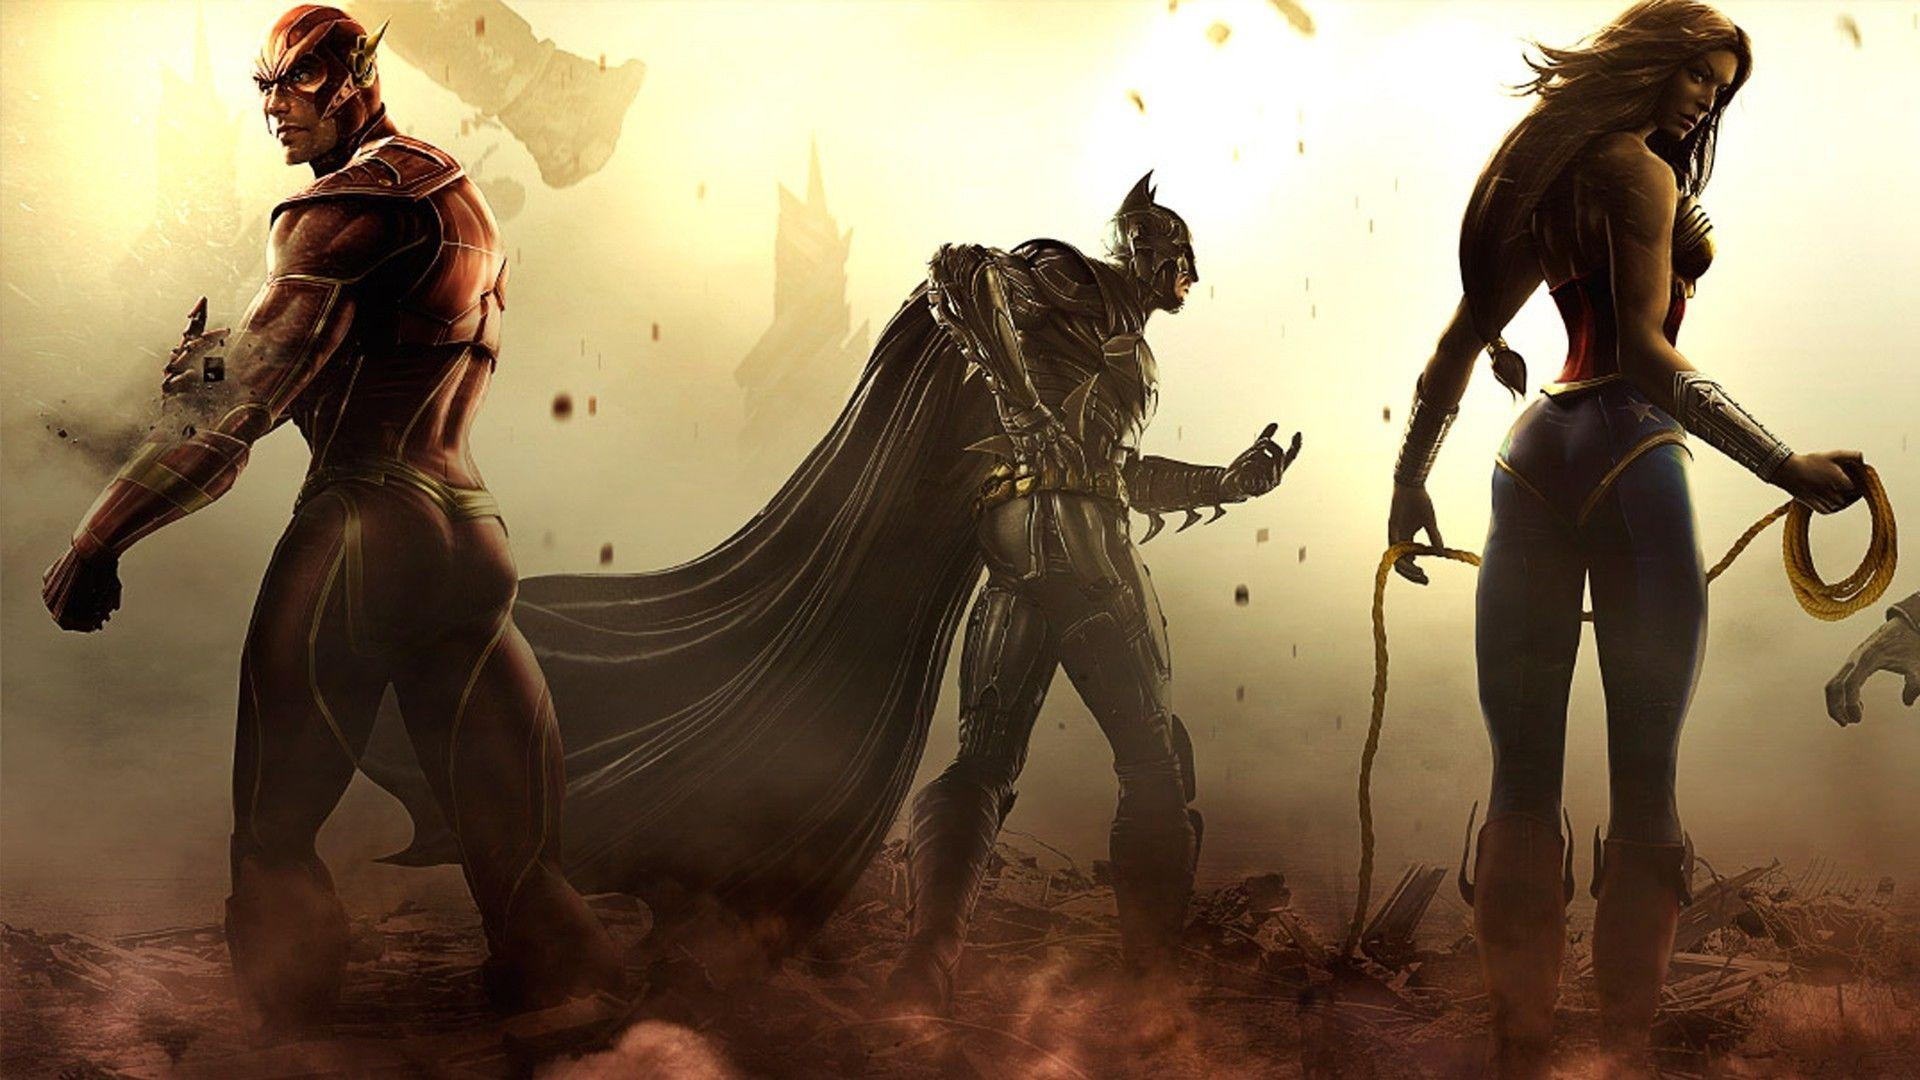 Injustice: Gods Among Us Wallpapers - Wallpaper Cave